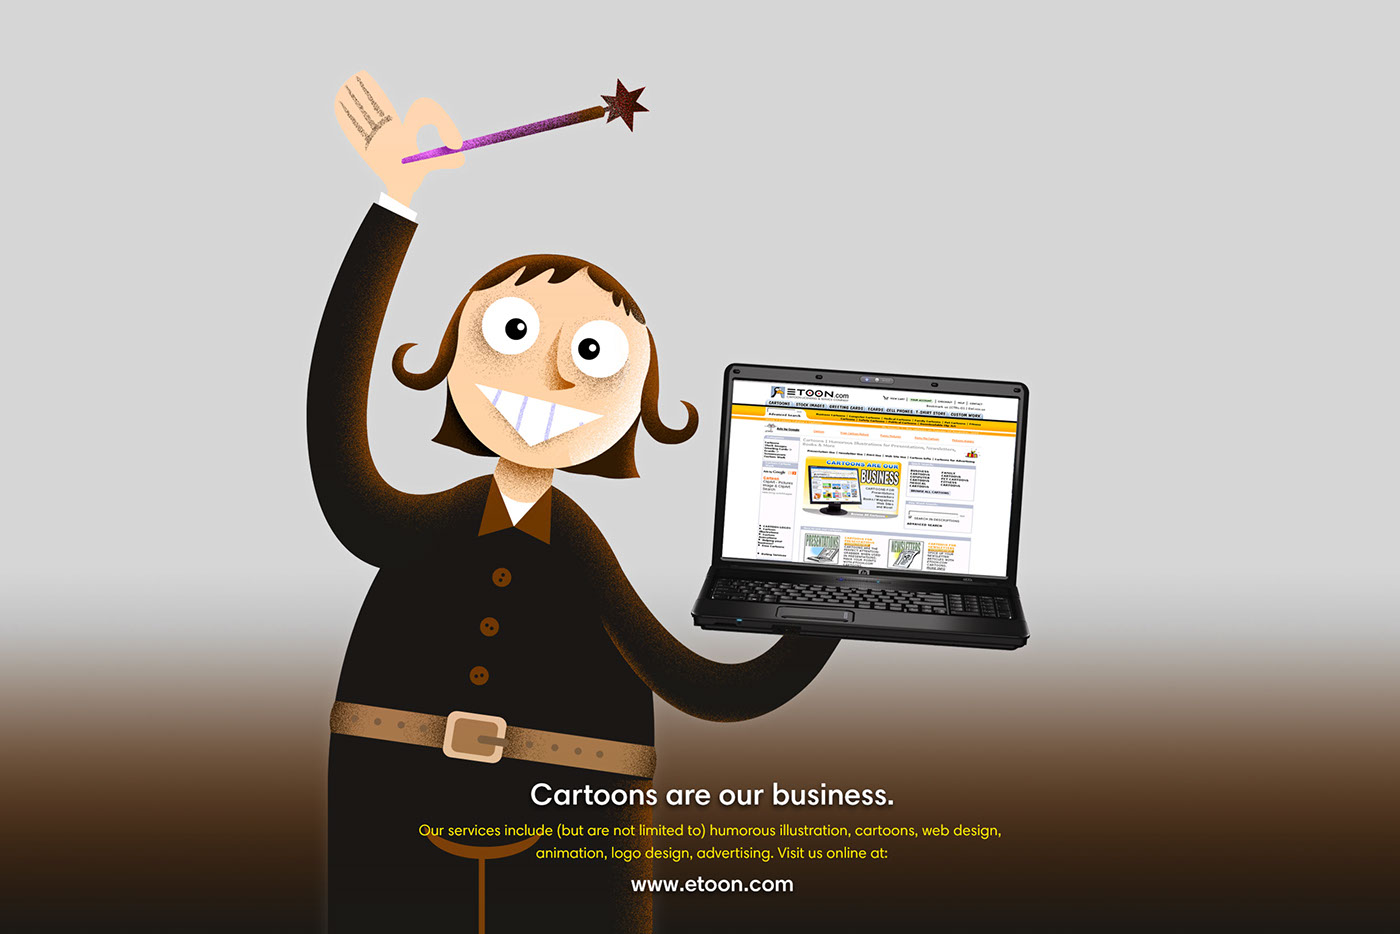 Cartoons for your business